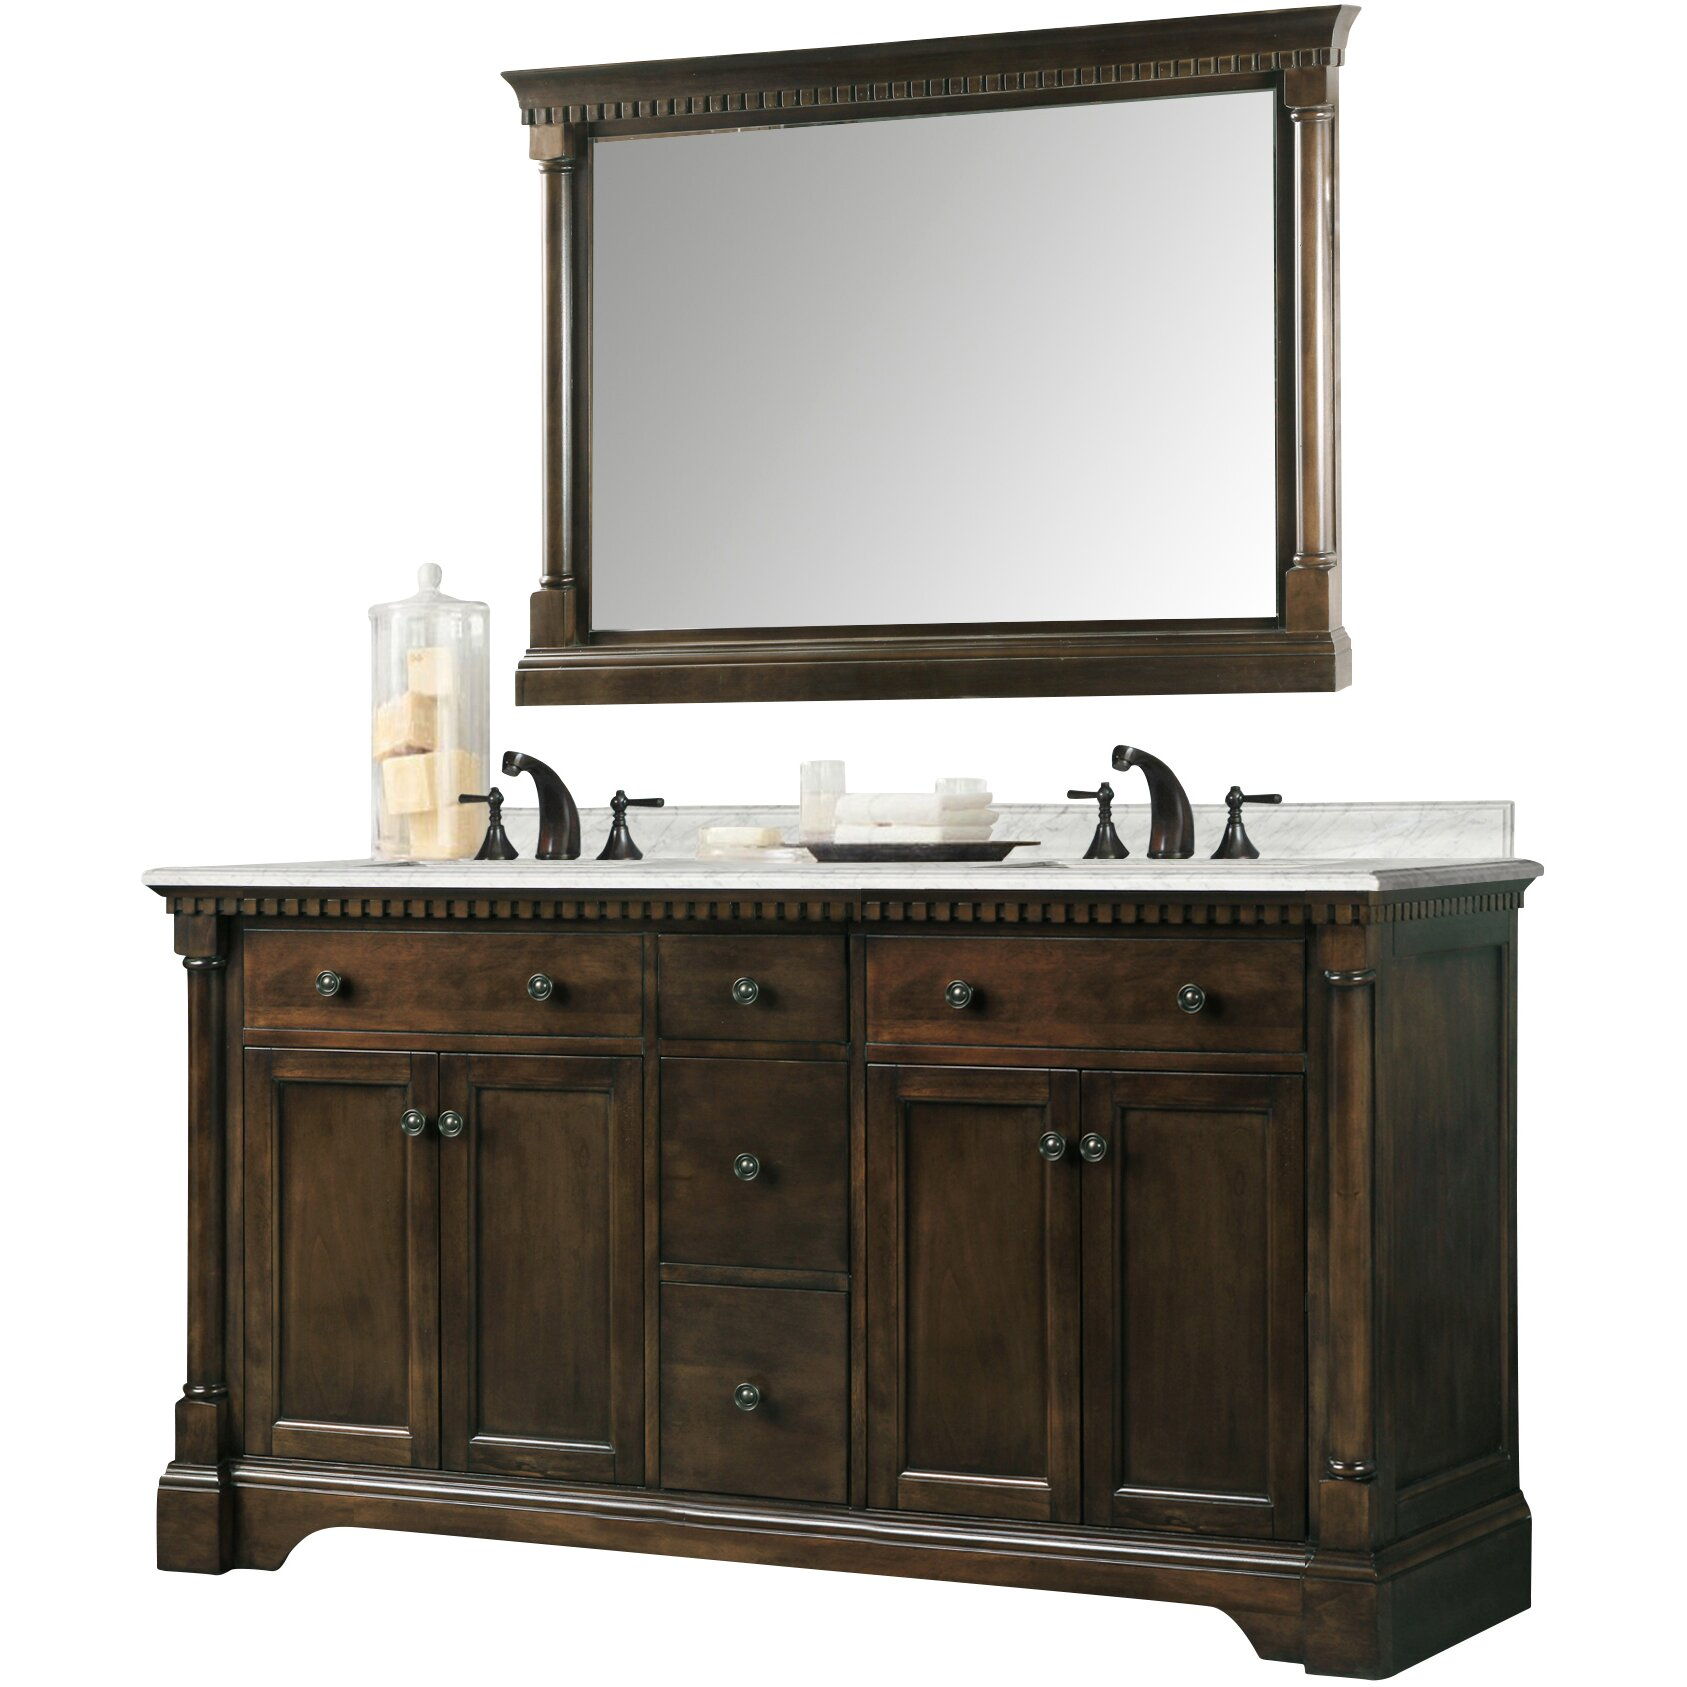 Legion furniture 60 double bathroom vanity reviews for Legion furniture 30 inch bathroom vanity